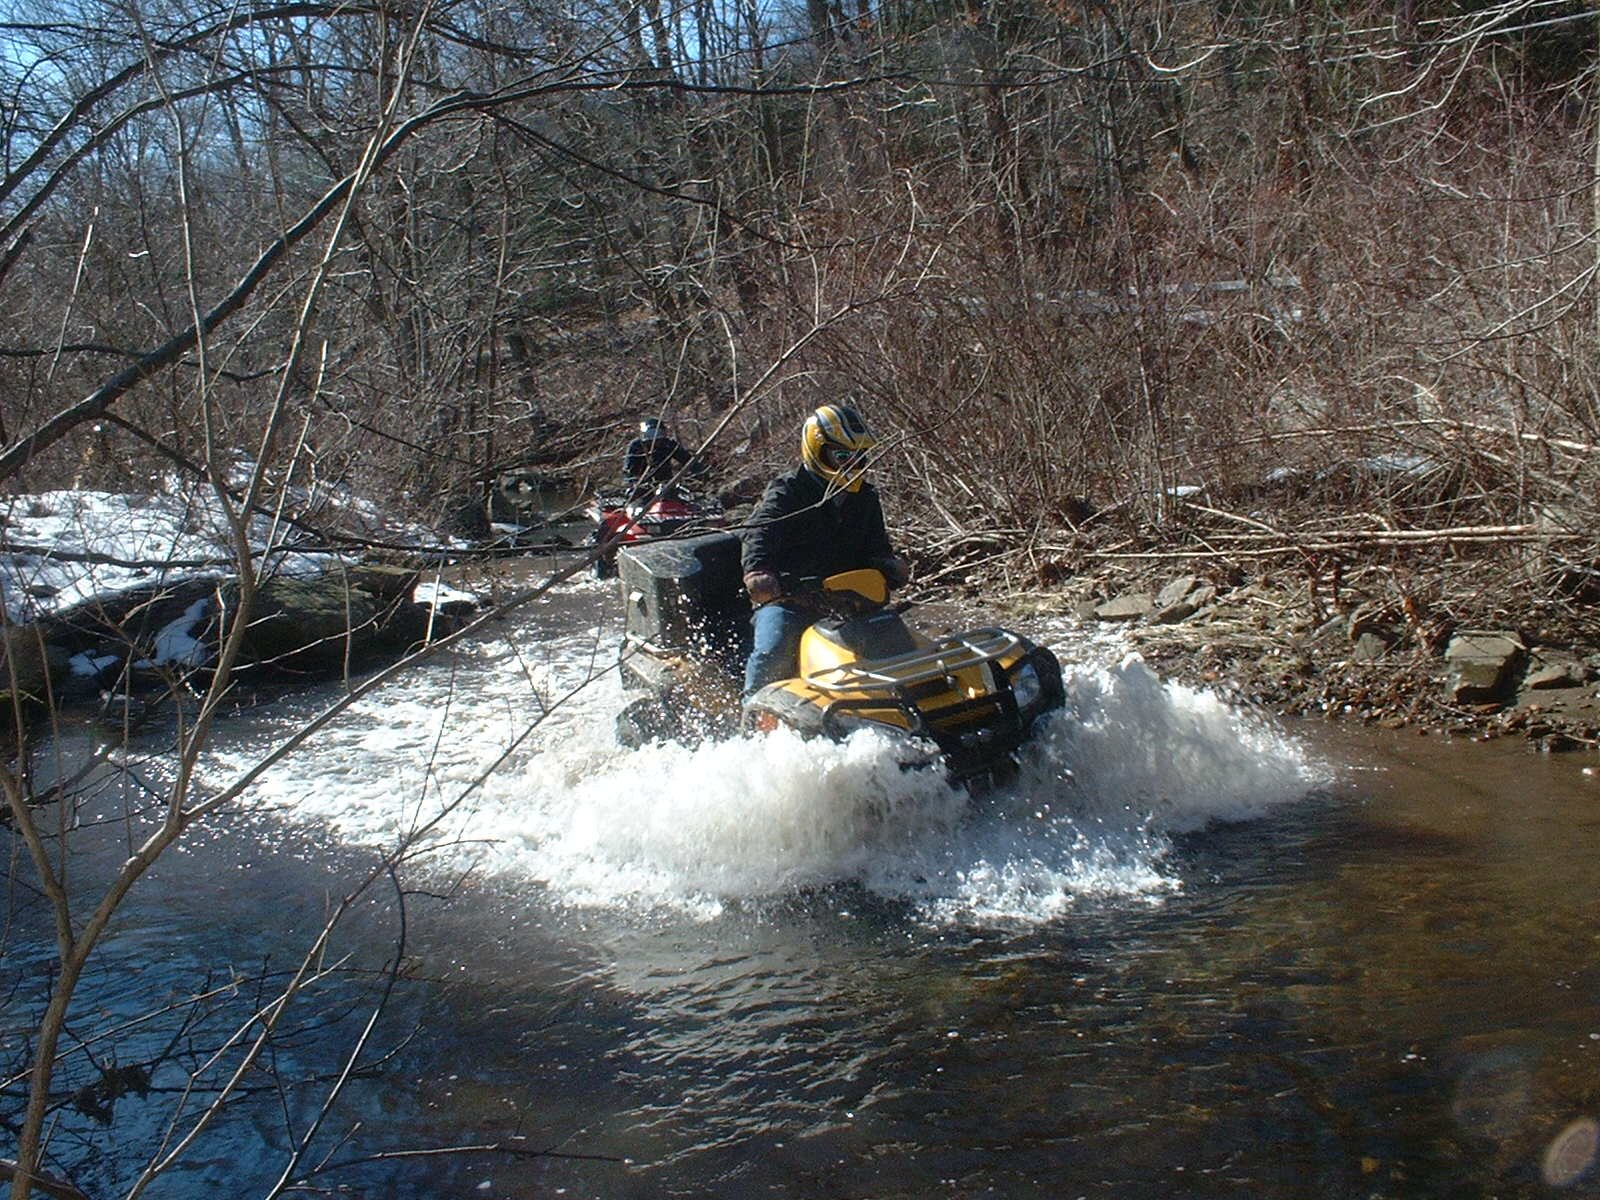 Honda Rincon Through Water